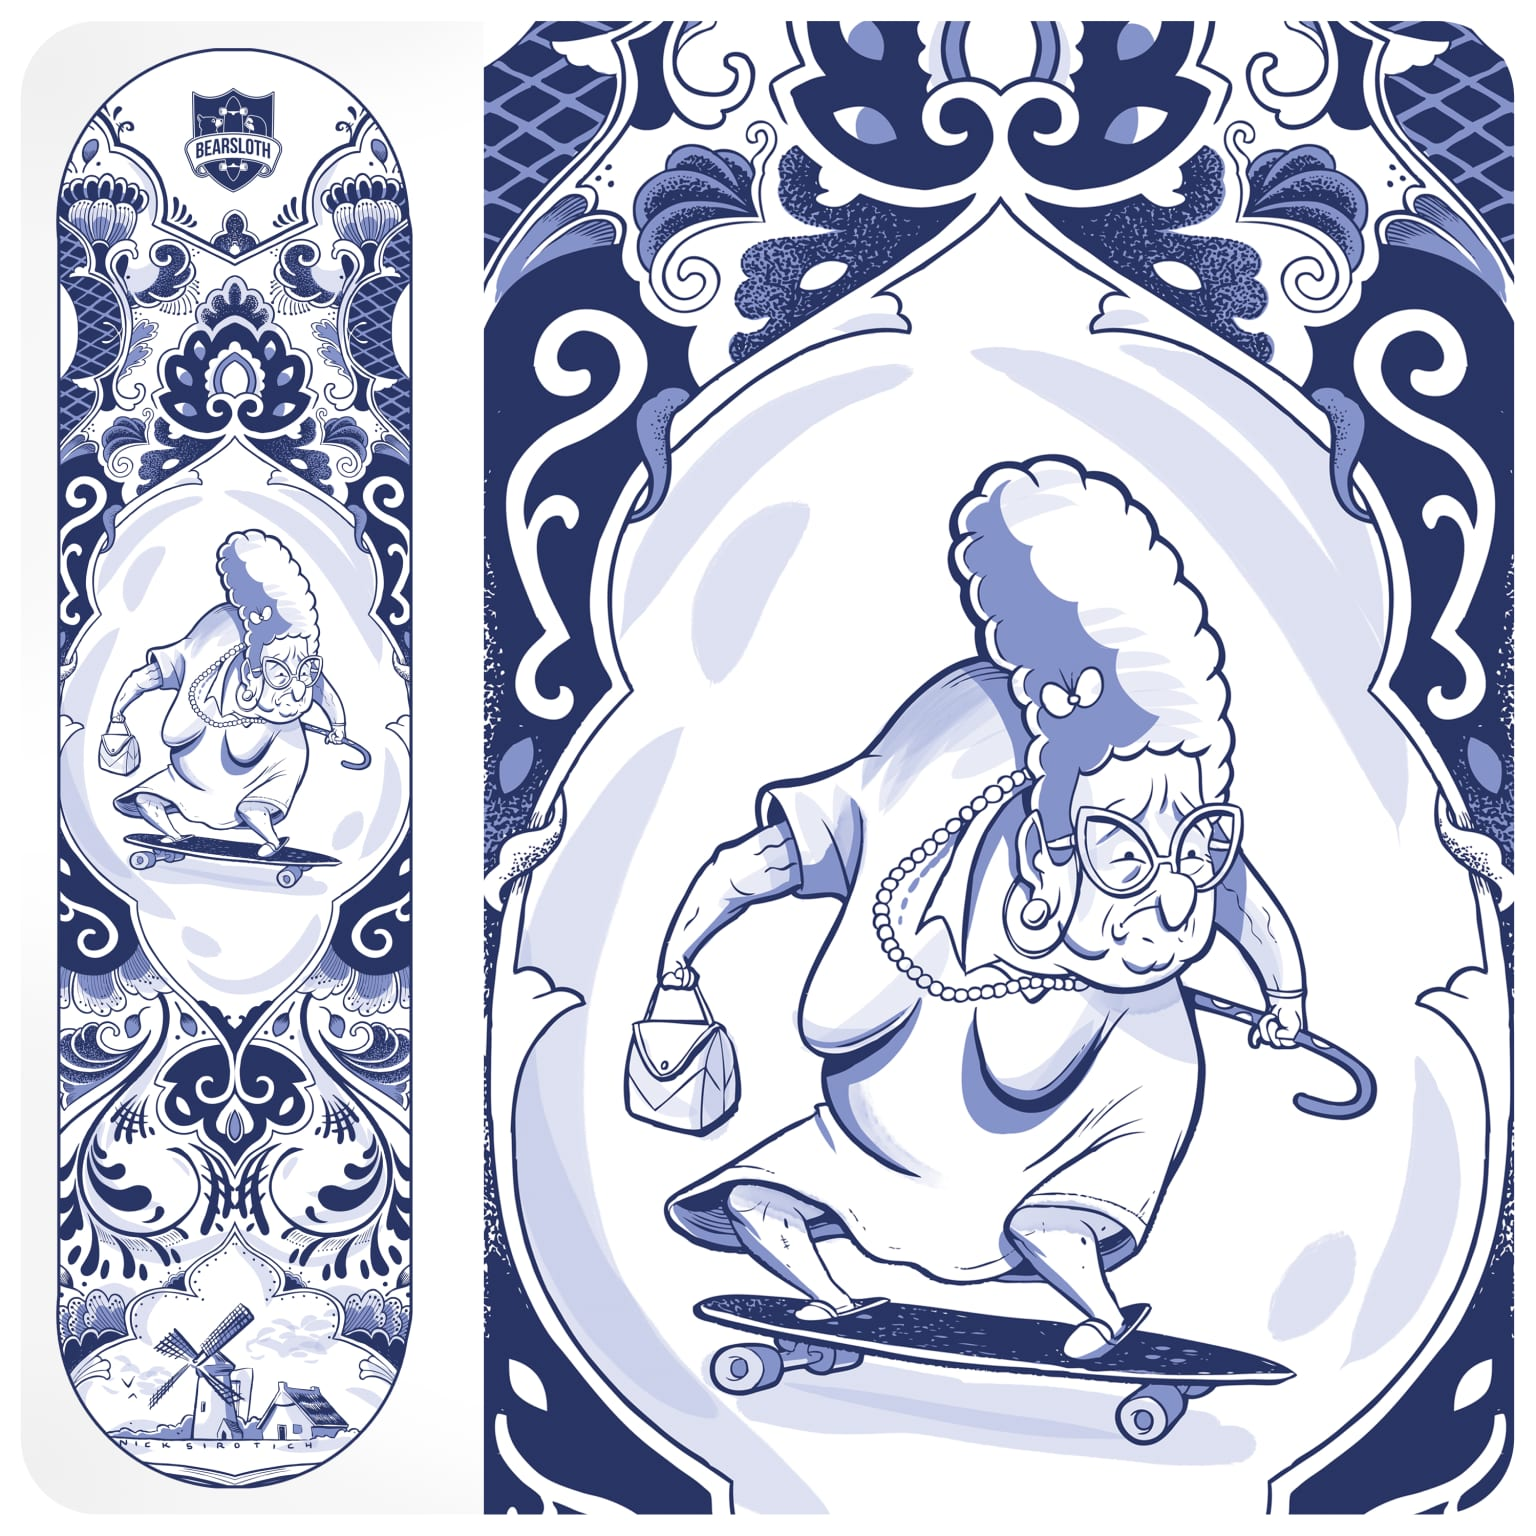 BearSloth Skateboards